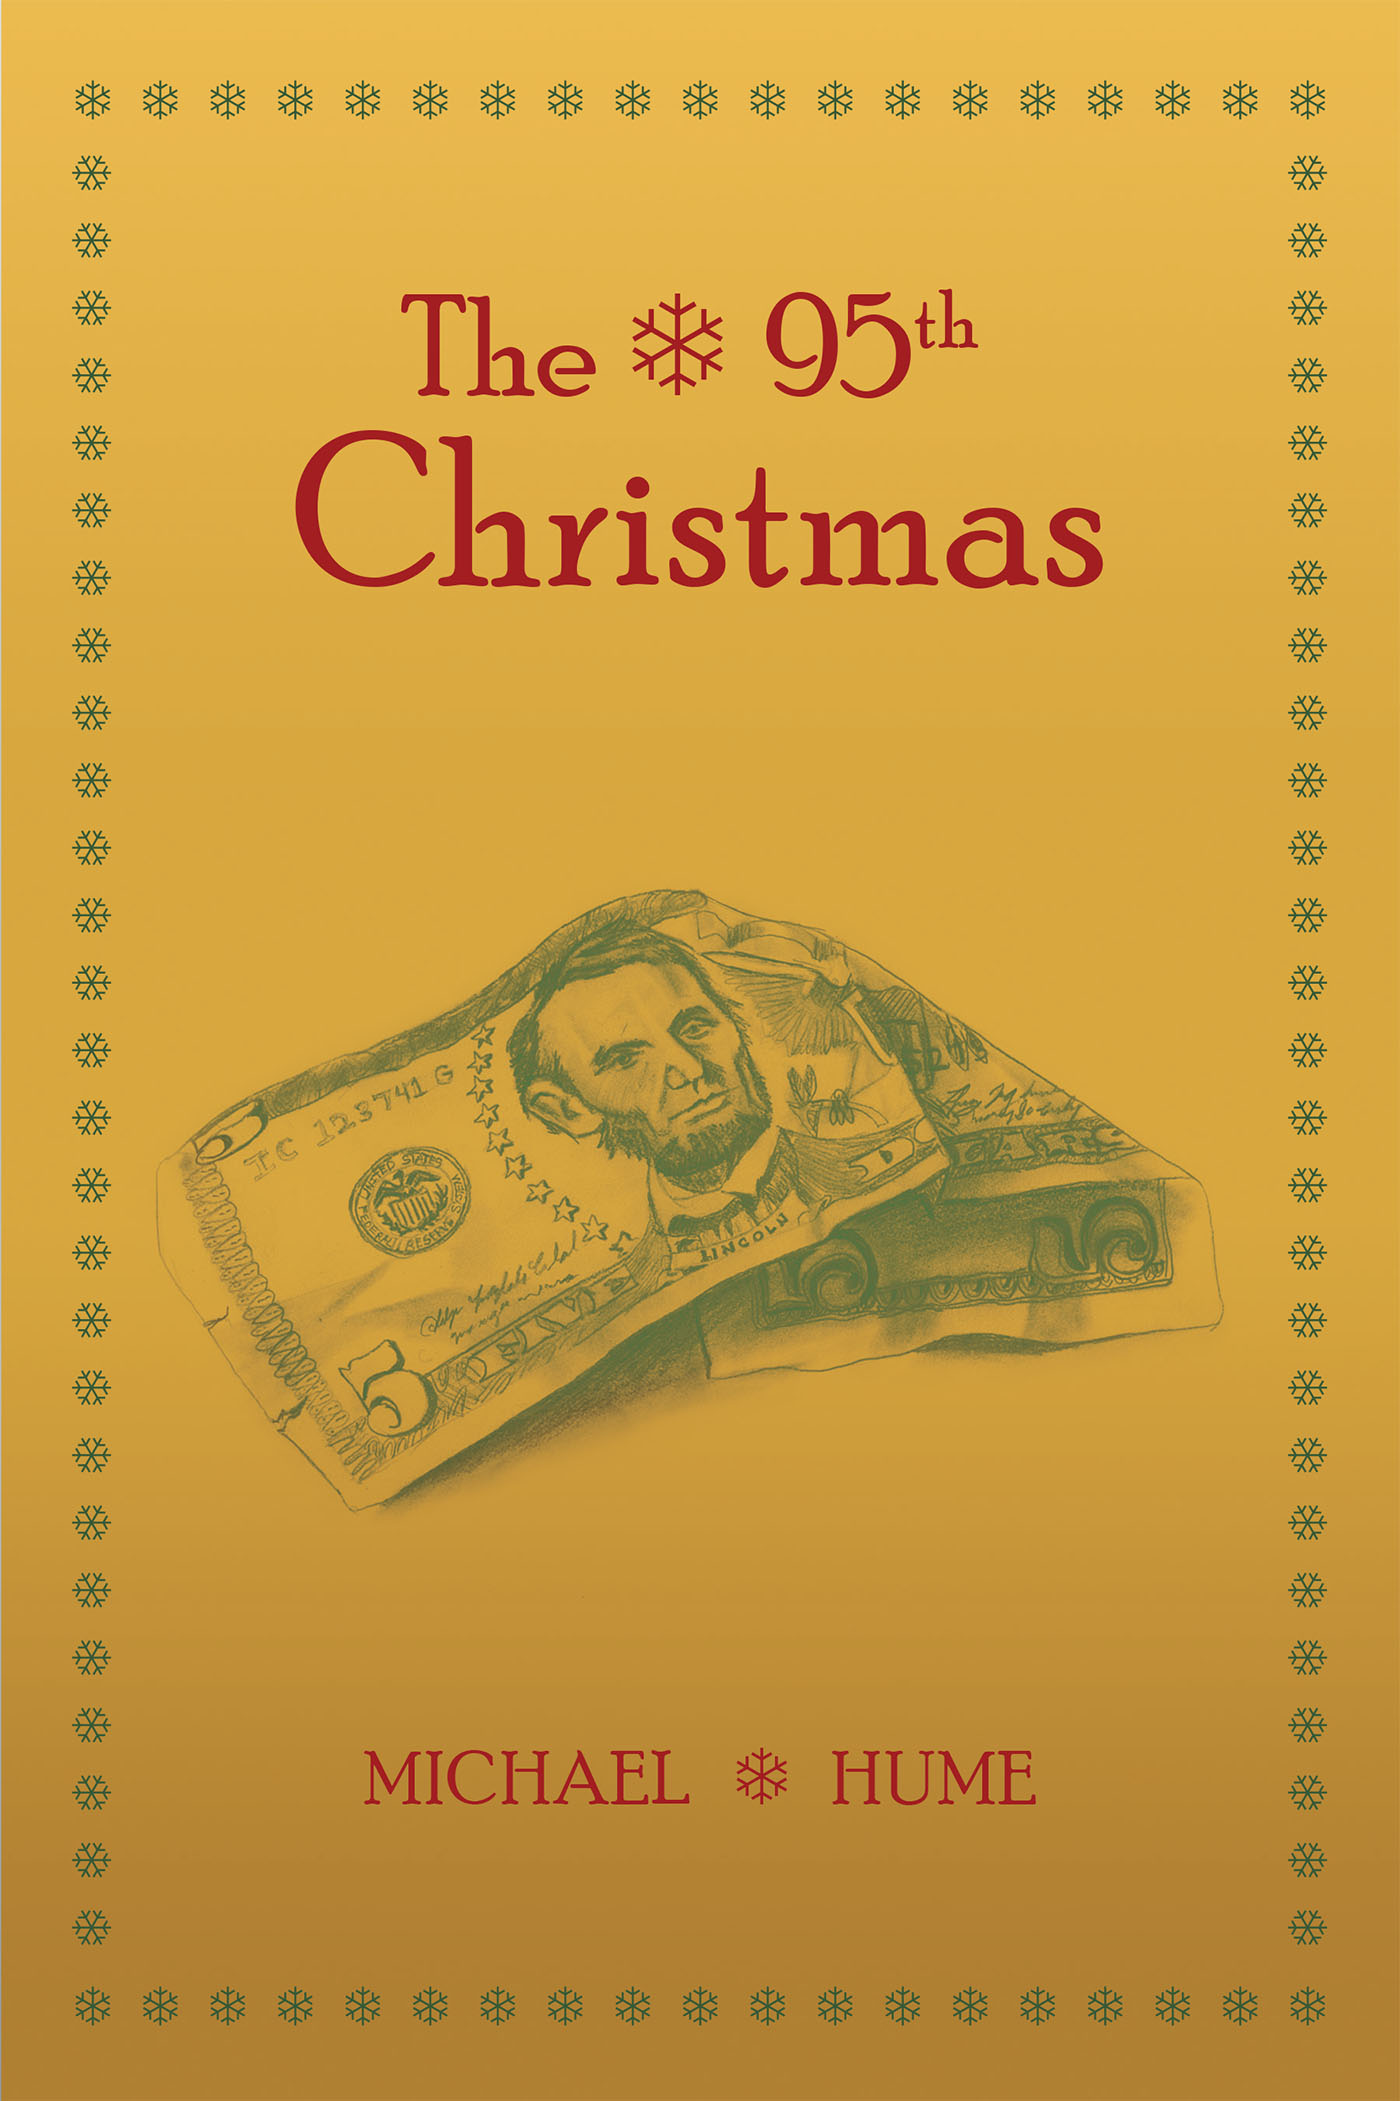 95th Christmas by Michael D. Hume